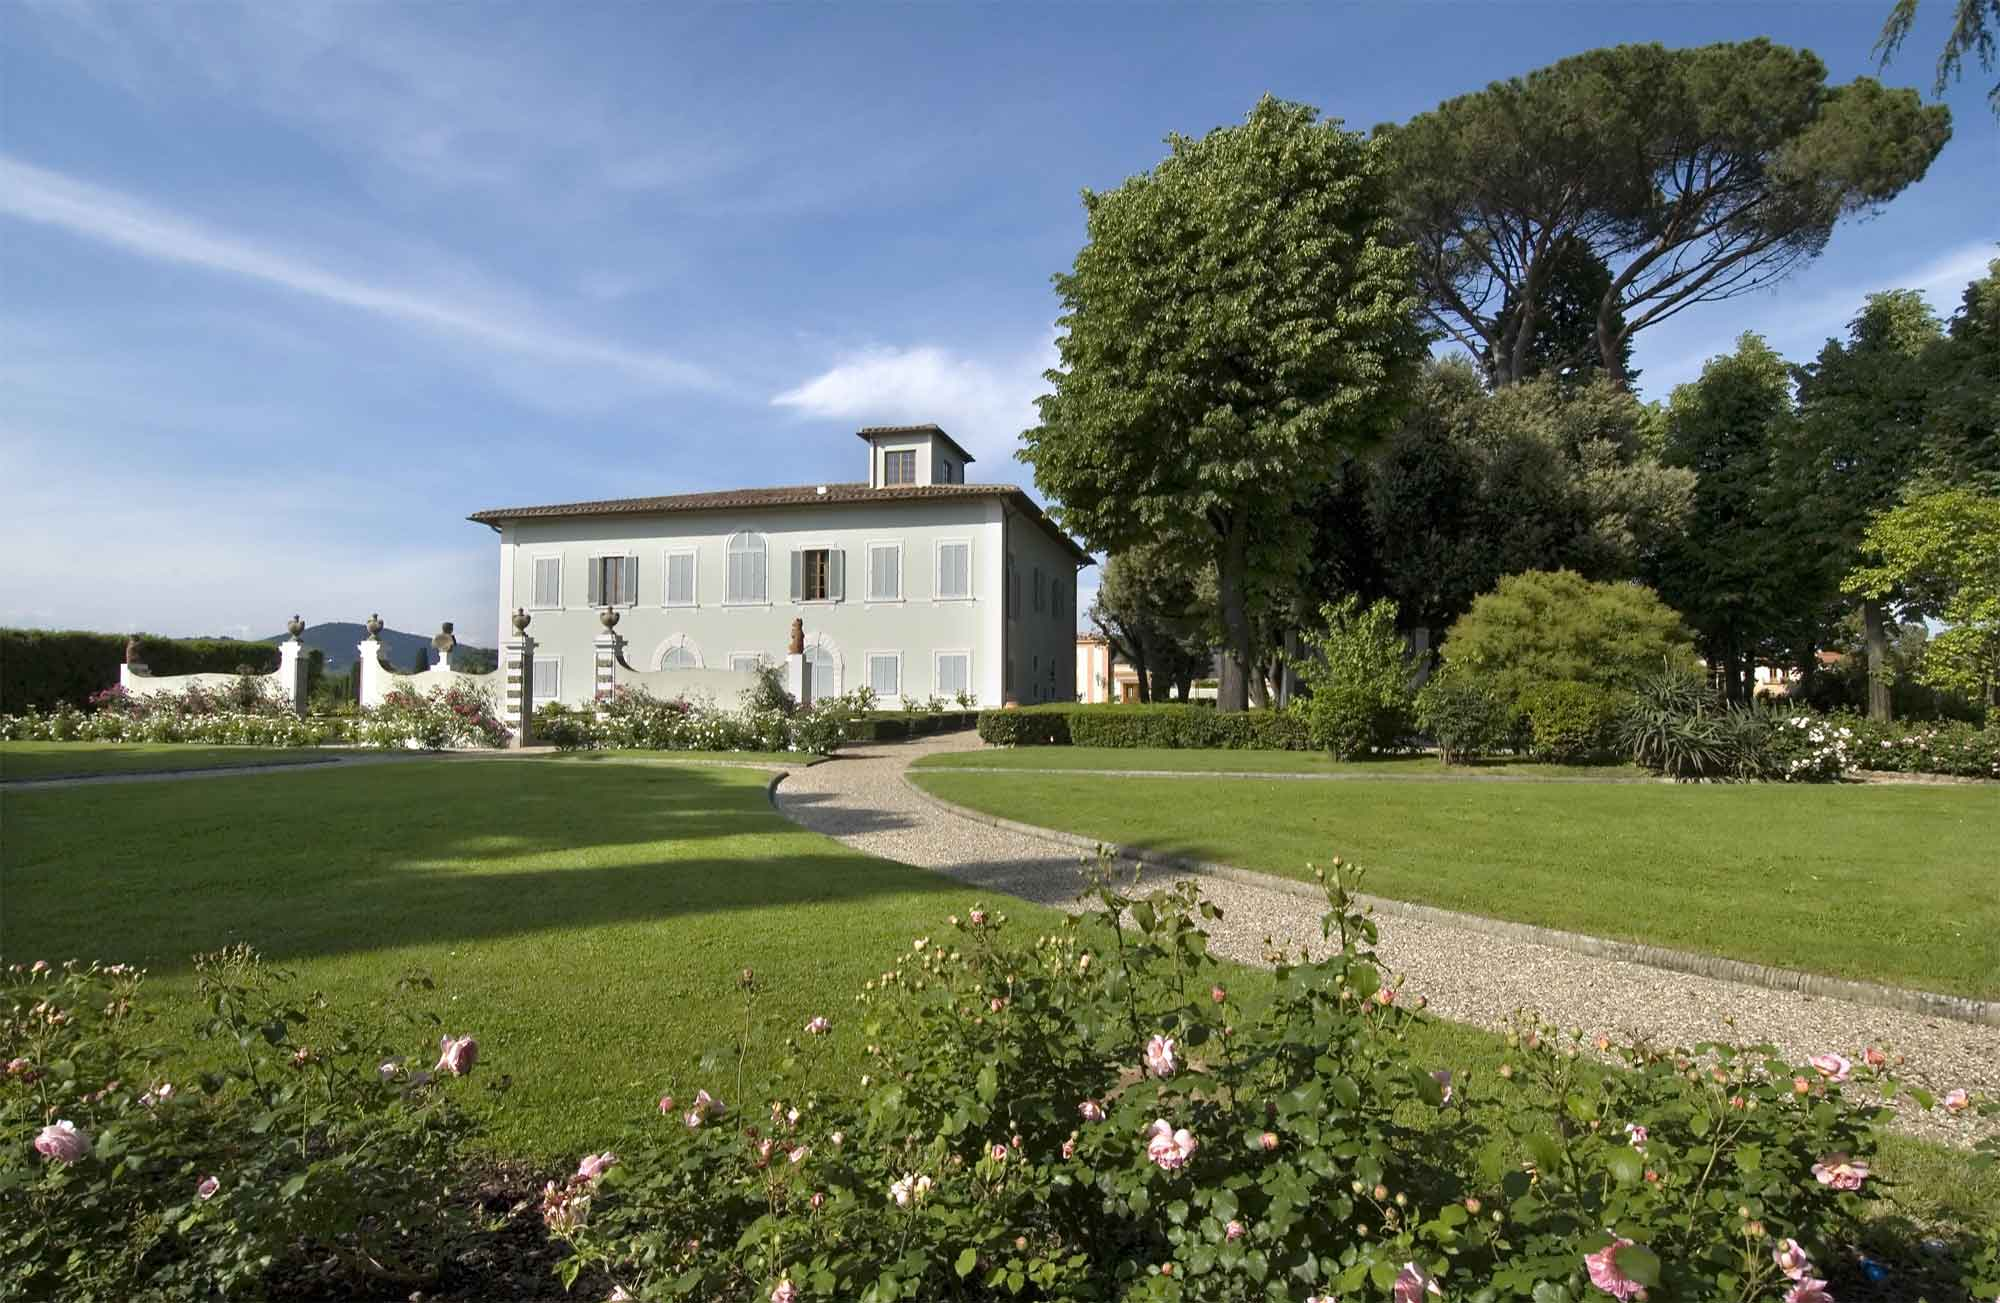 Villa Olmi Resort Firenze - MGallery Collection Varie ed eventuali